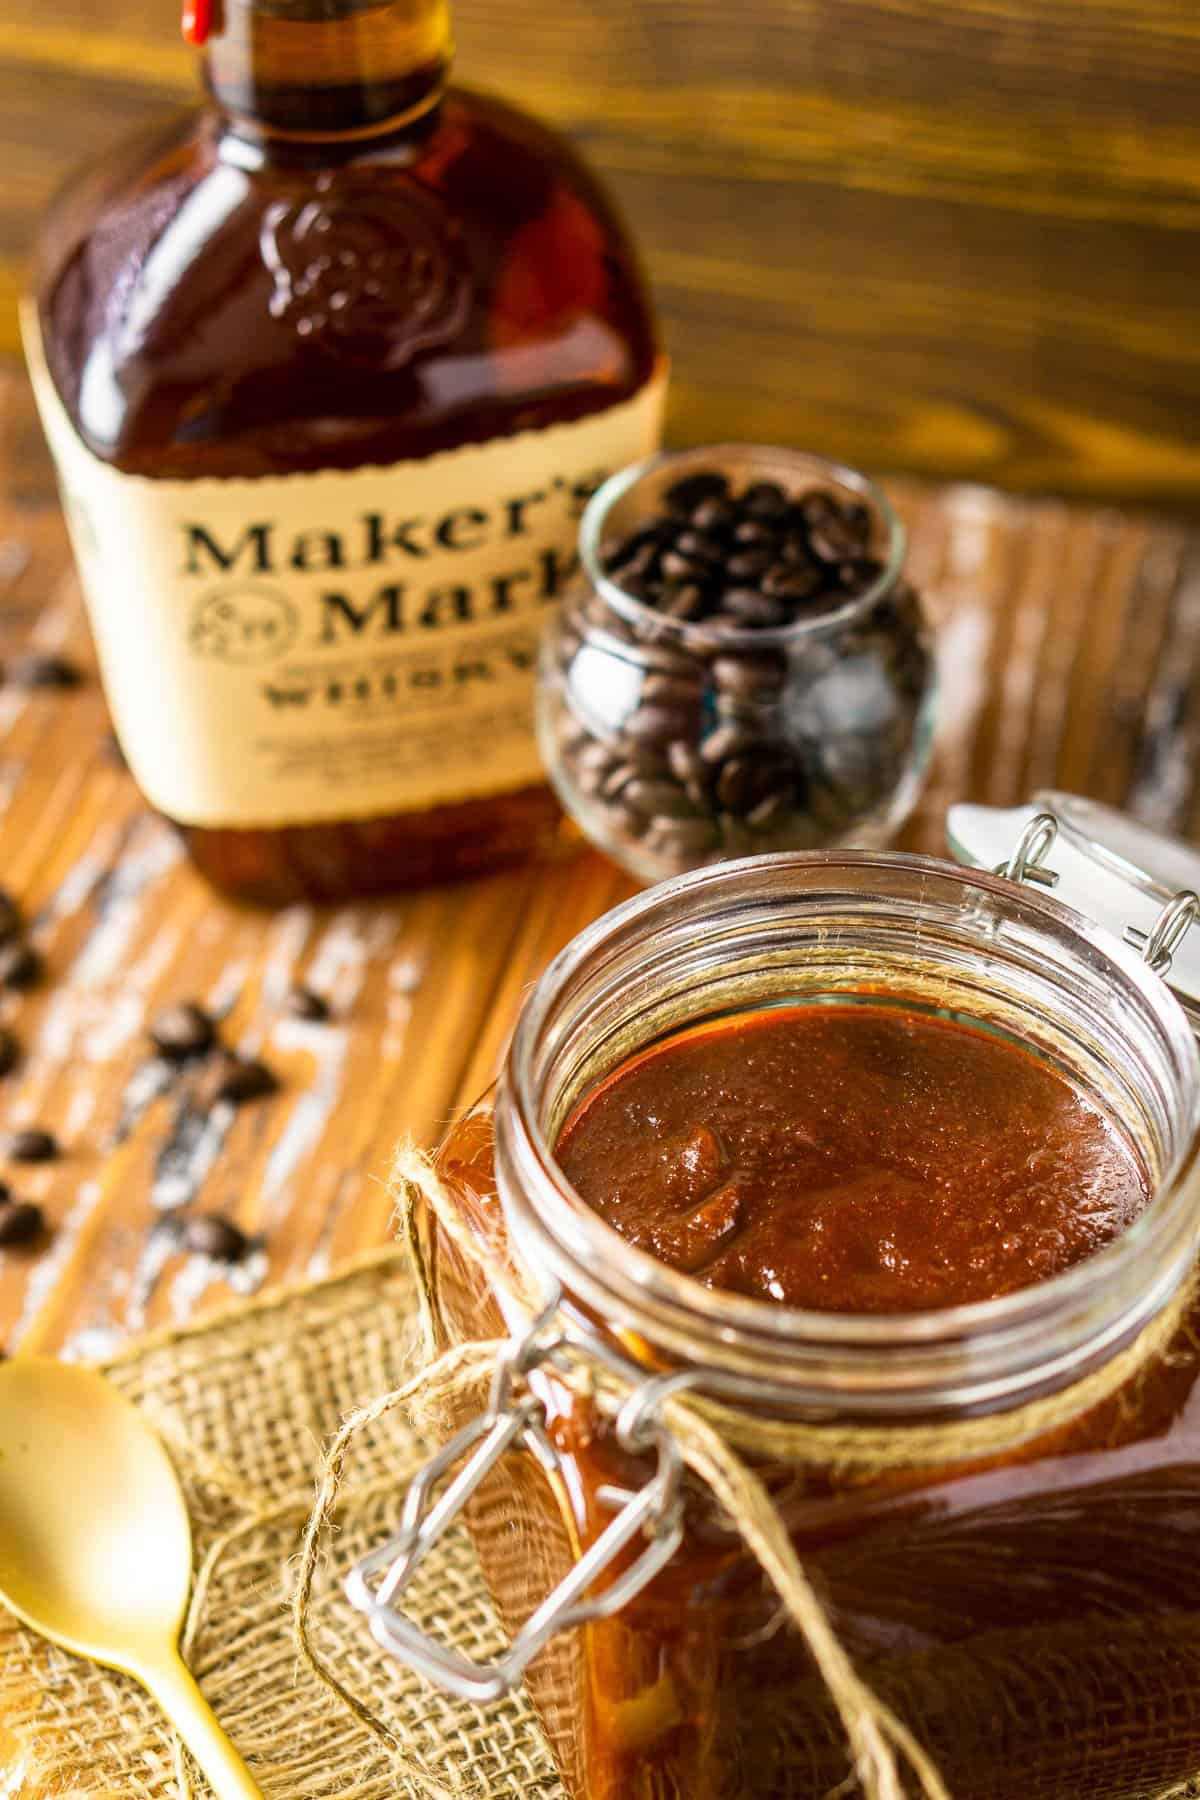 A close-up of the jar of coffee-bourbon BBQ sauce with a bottle of bourbon.